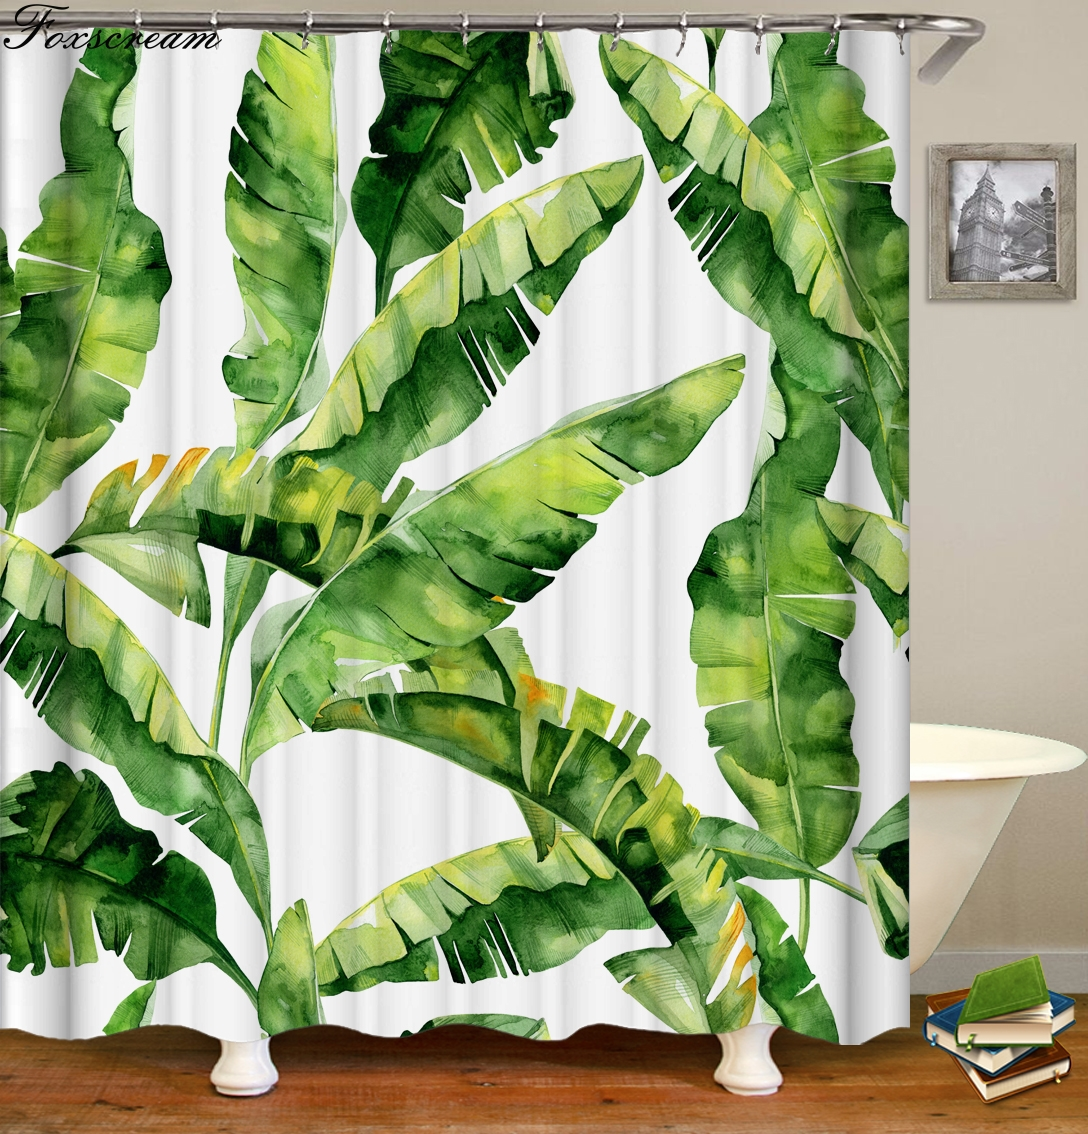 Us 6 29 30 Off Leaf Curtains For Bathroom Tropical Shower Curtain Polyester Fabric Waterproof Green Bathroom Green Leaves Shower Curtain In Shower